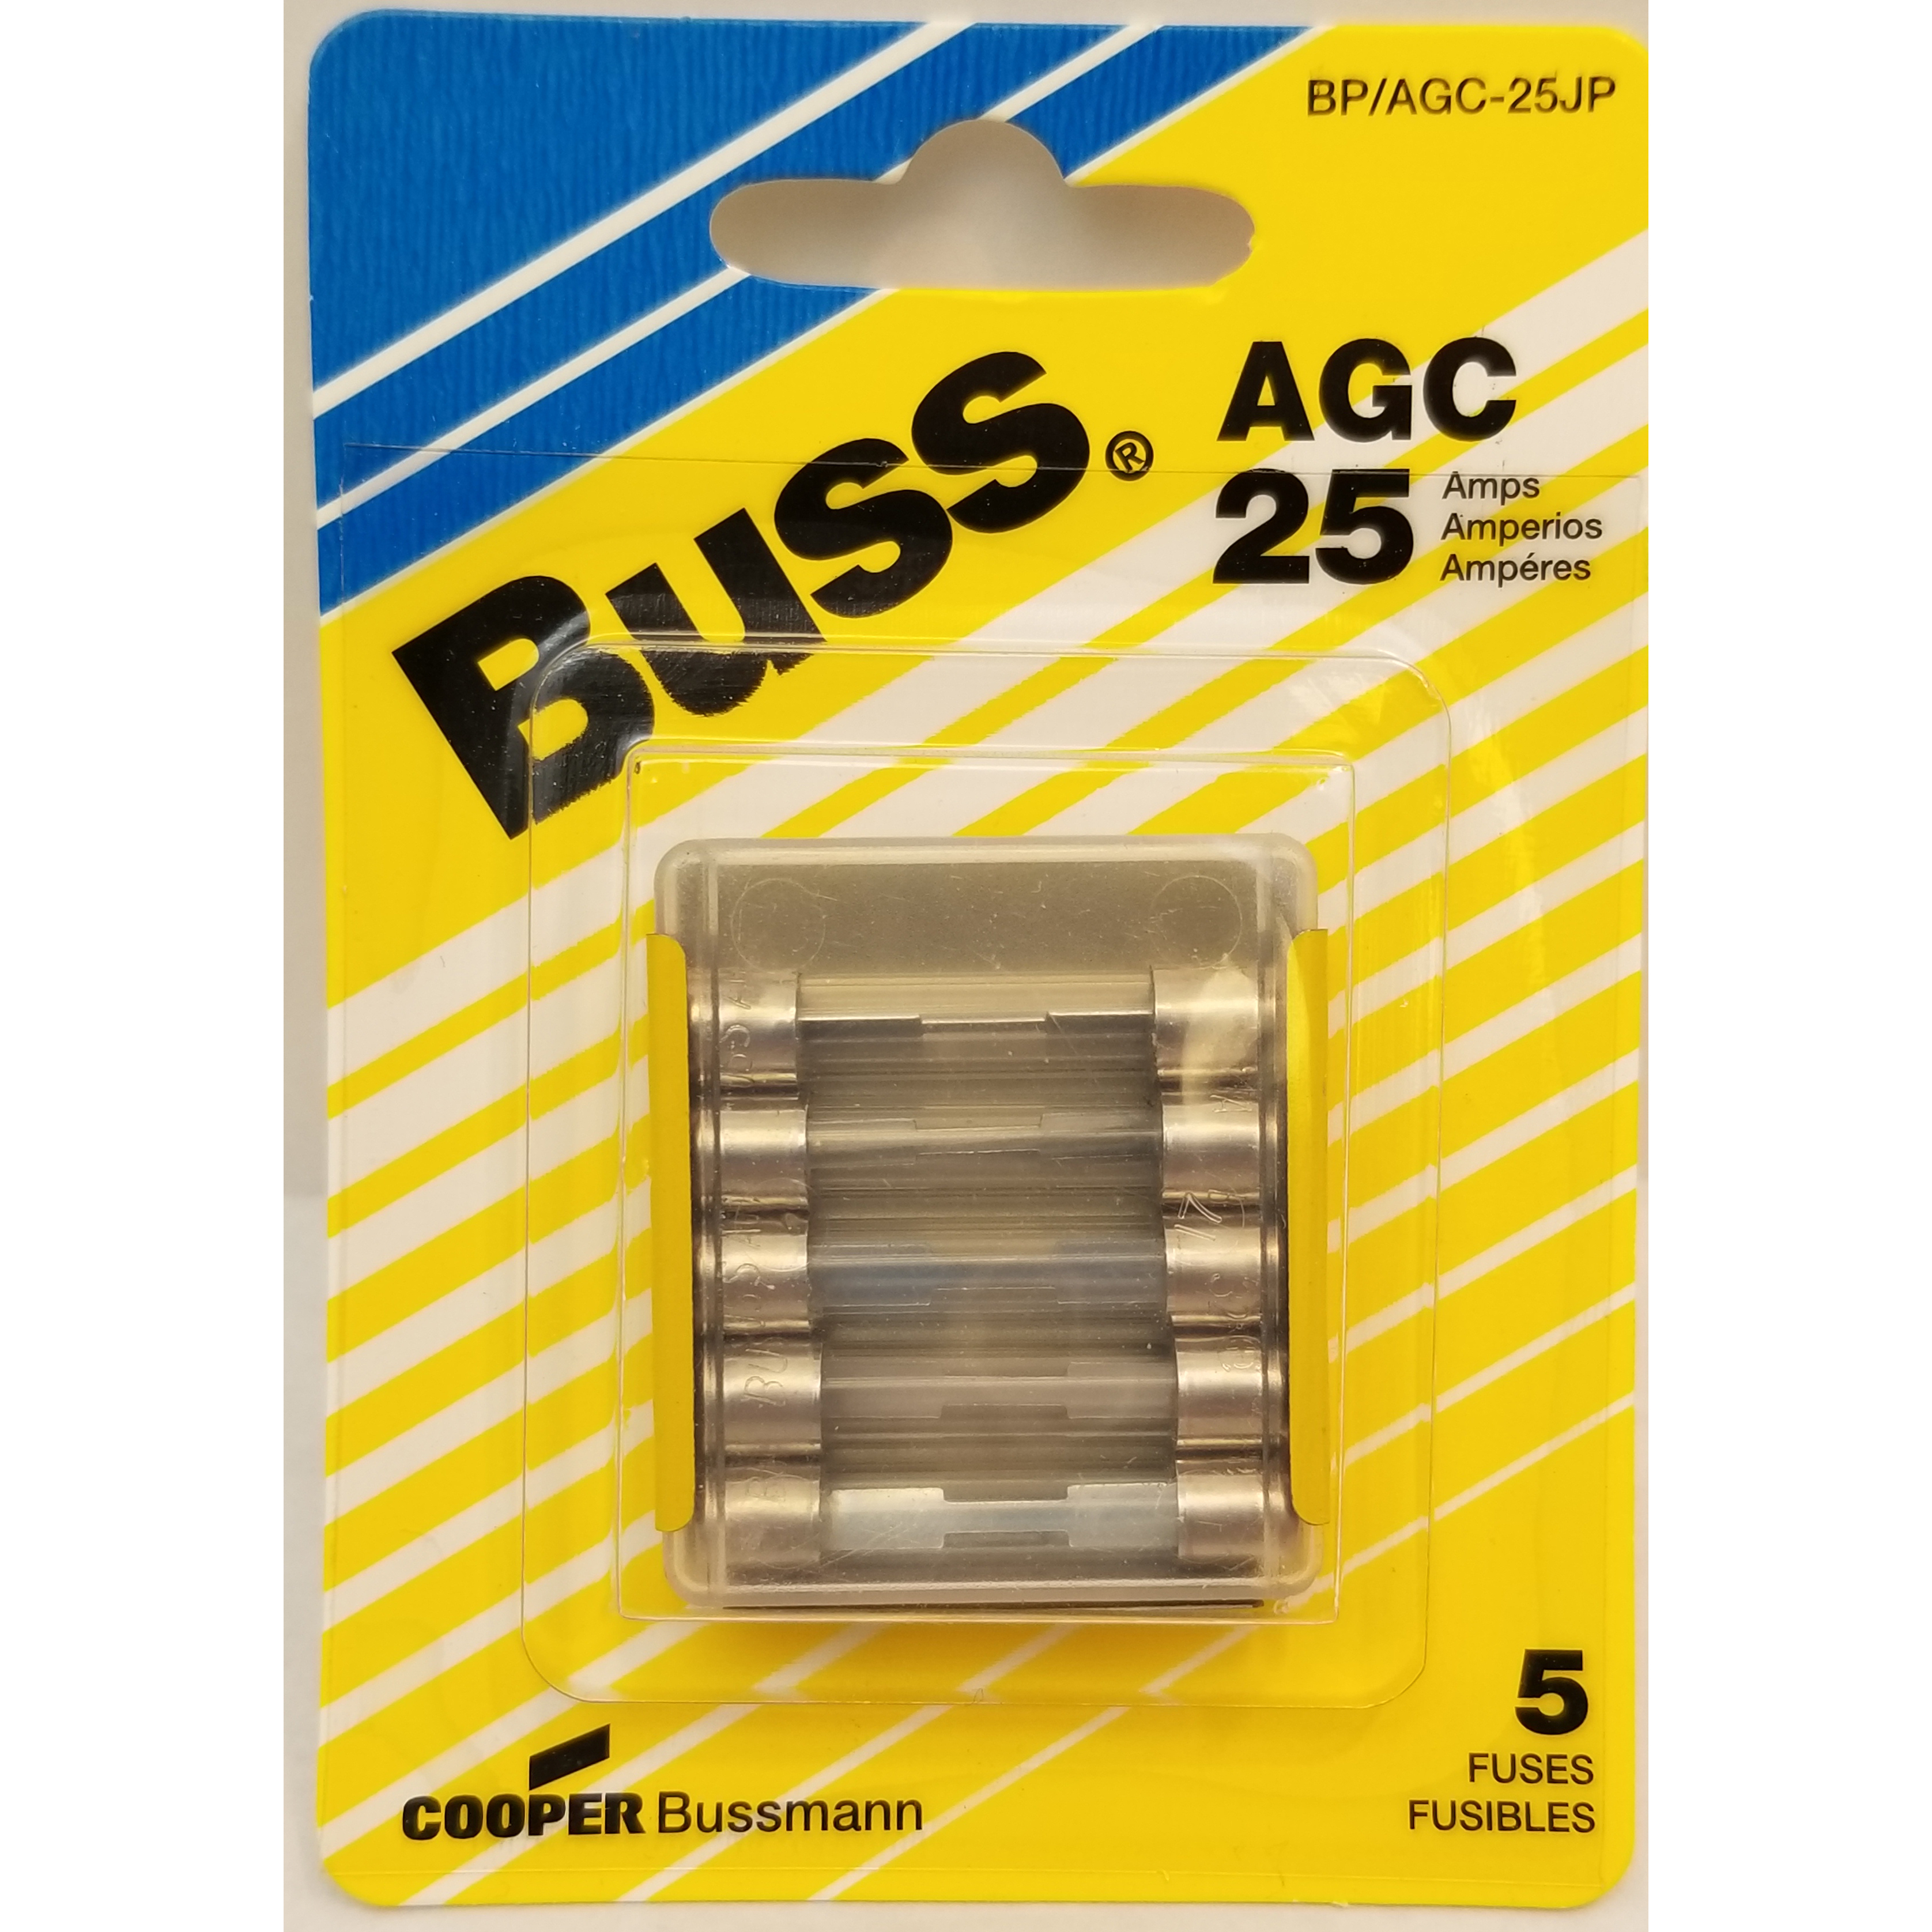 058BPATC25JP - Blister Packed Atc-25 Amp Fuse